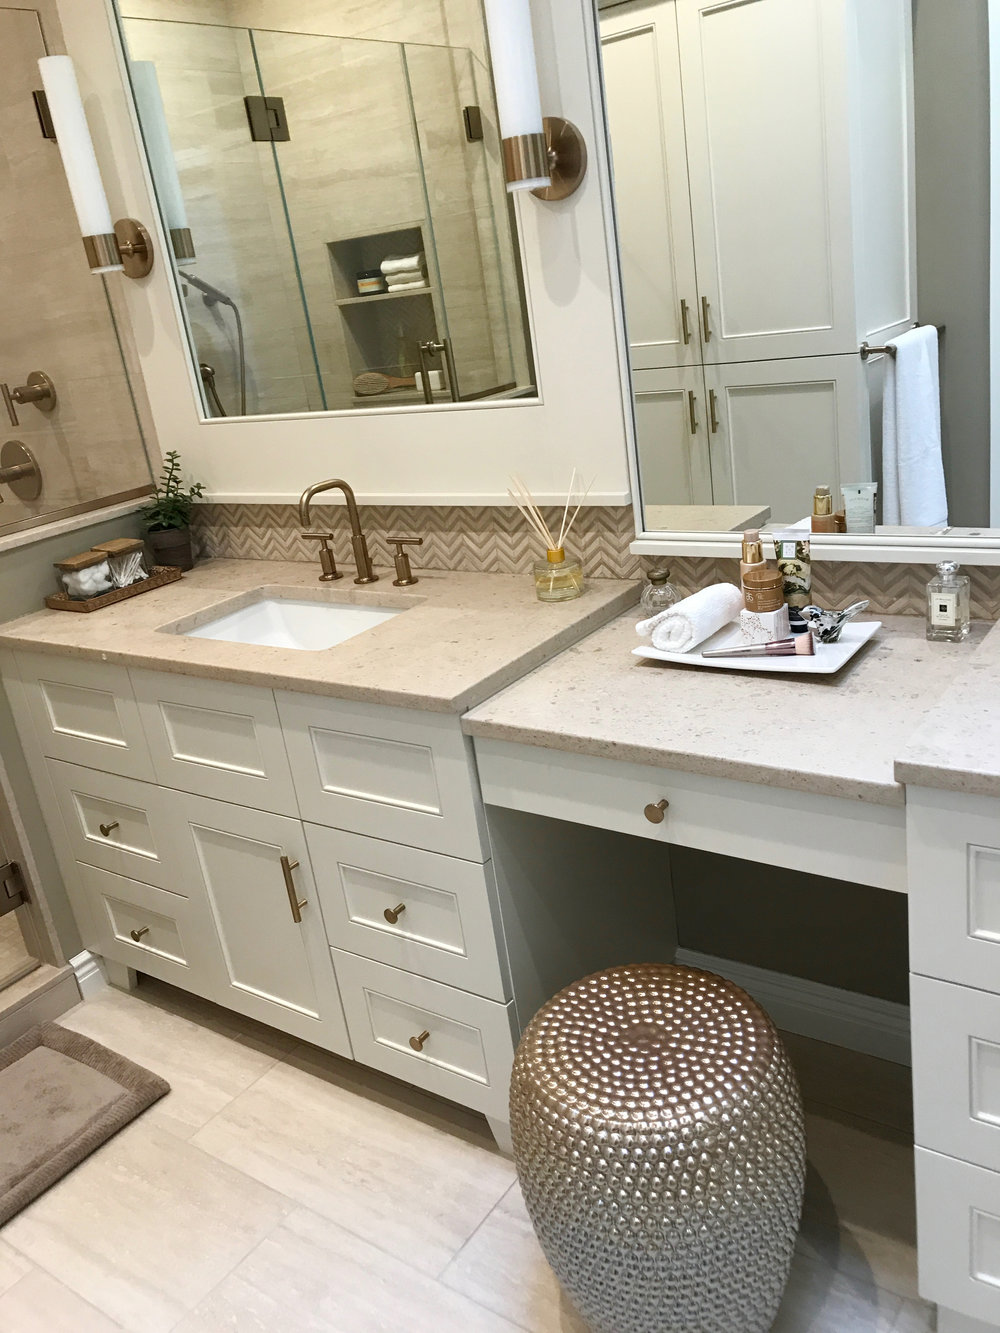 KAM Design_MasterBath_Vanity_Mirror_Sconces_MakeupTable_Pleasantville_2017 - 8.jpg